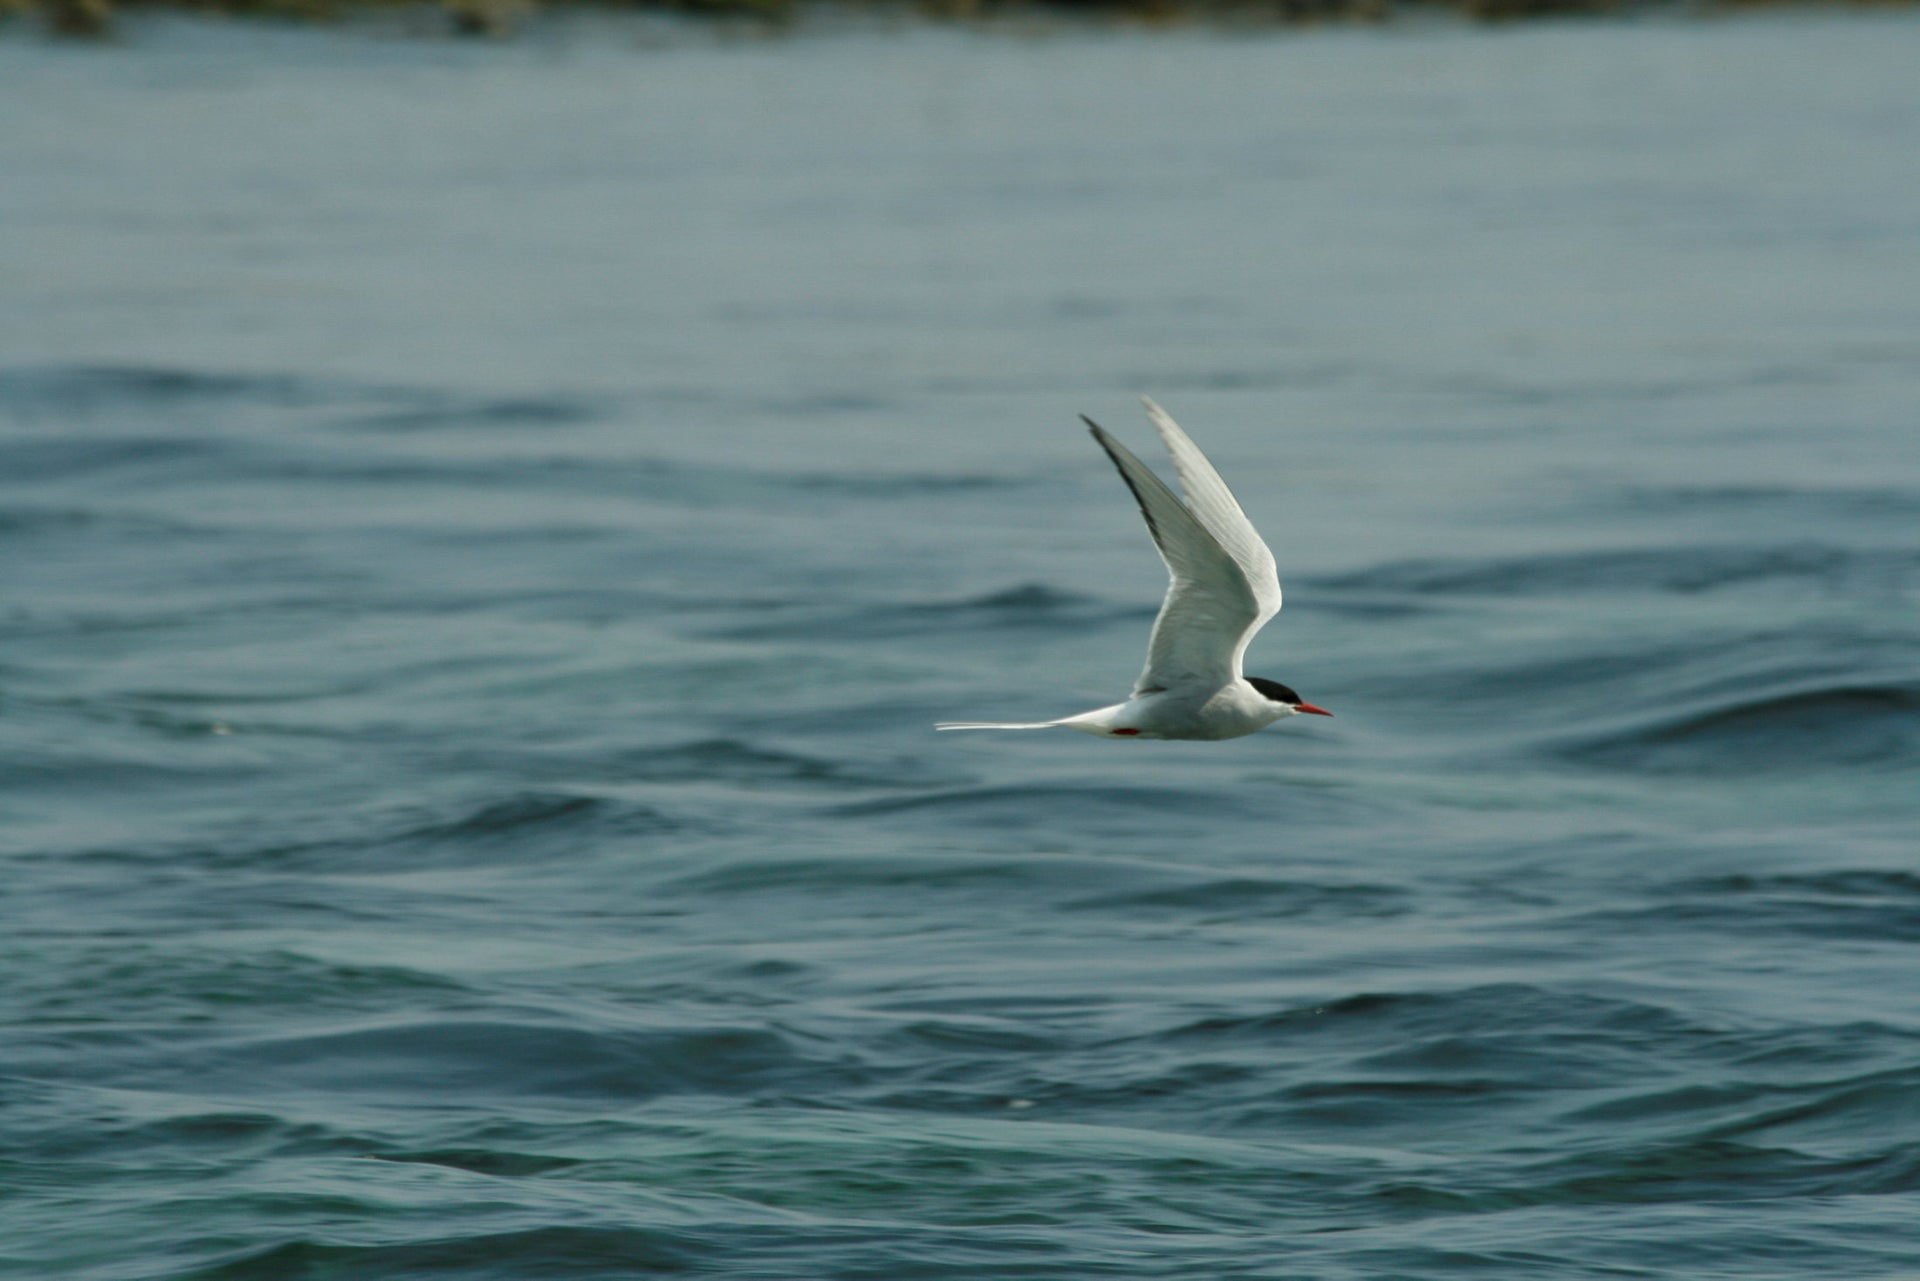 Arctic tern populations have declined in Canada in areas where climate has warmed rapidly/